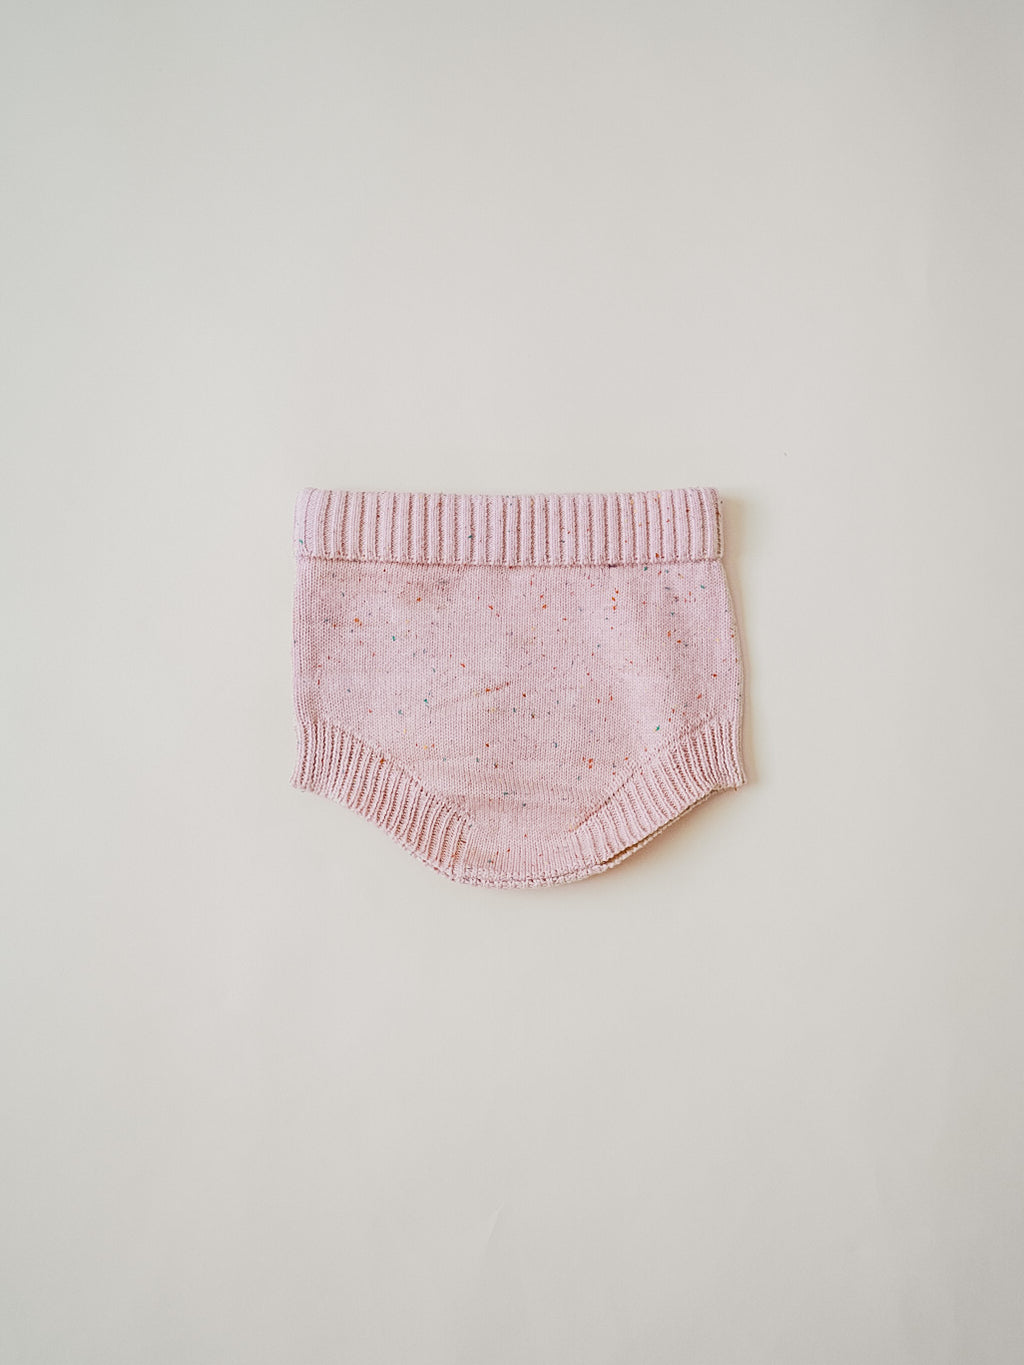 Speckled Knit Bloomer - Peony